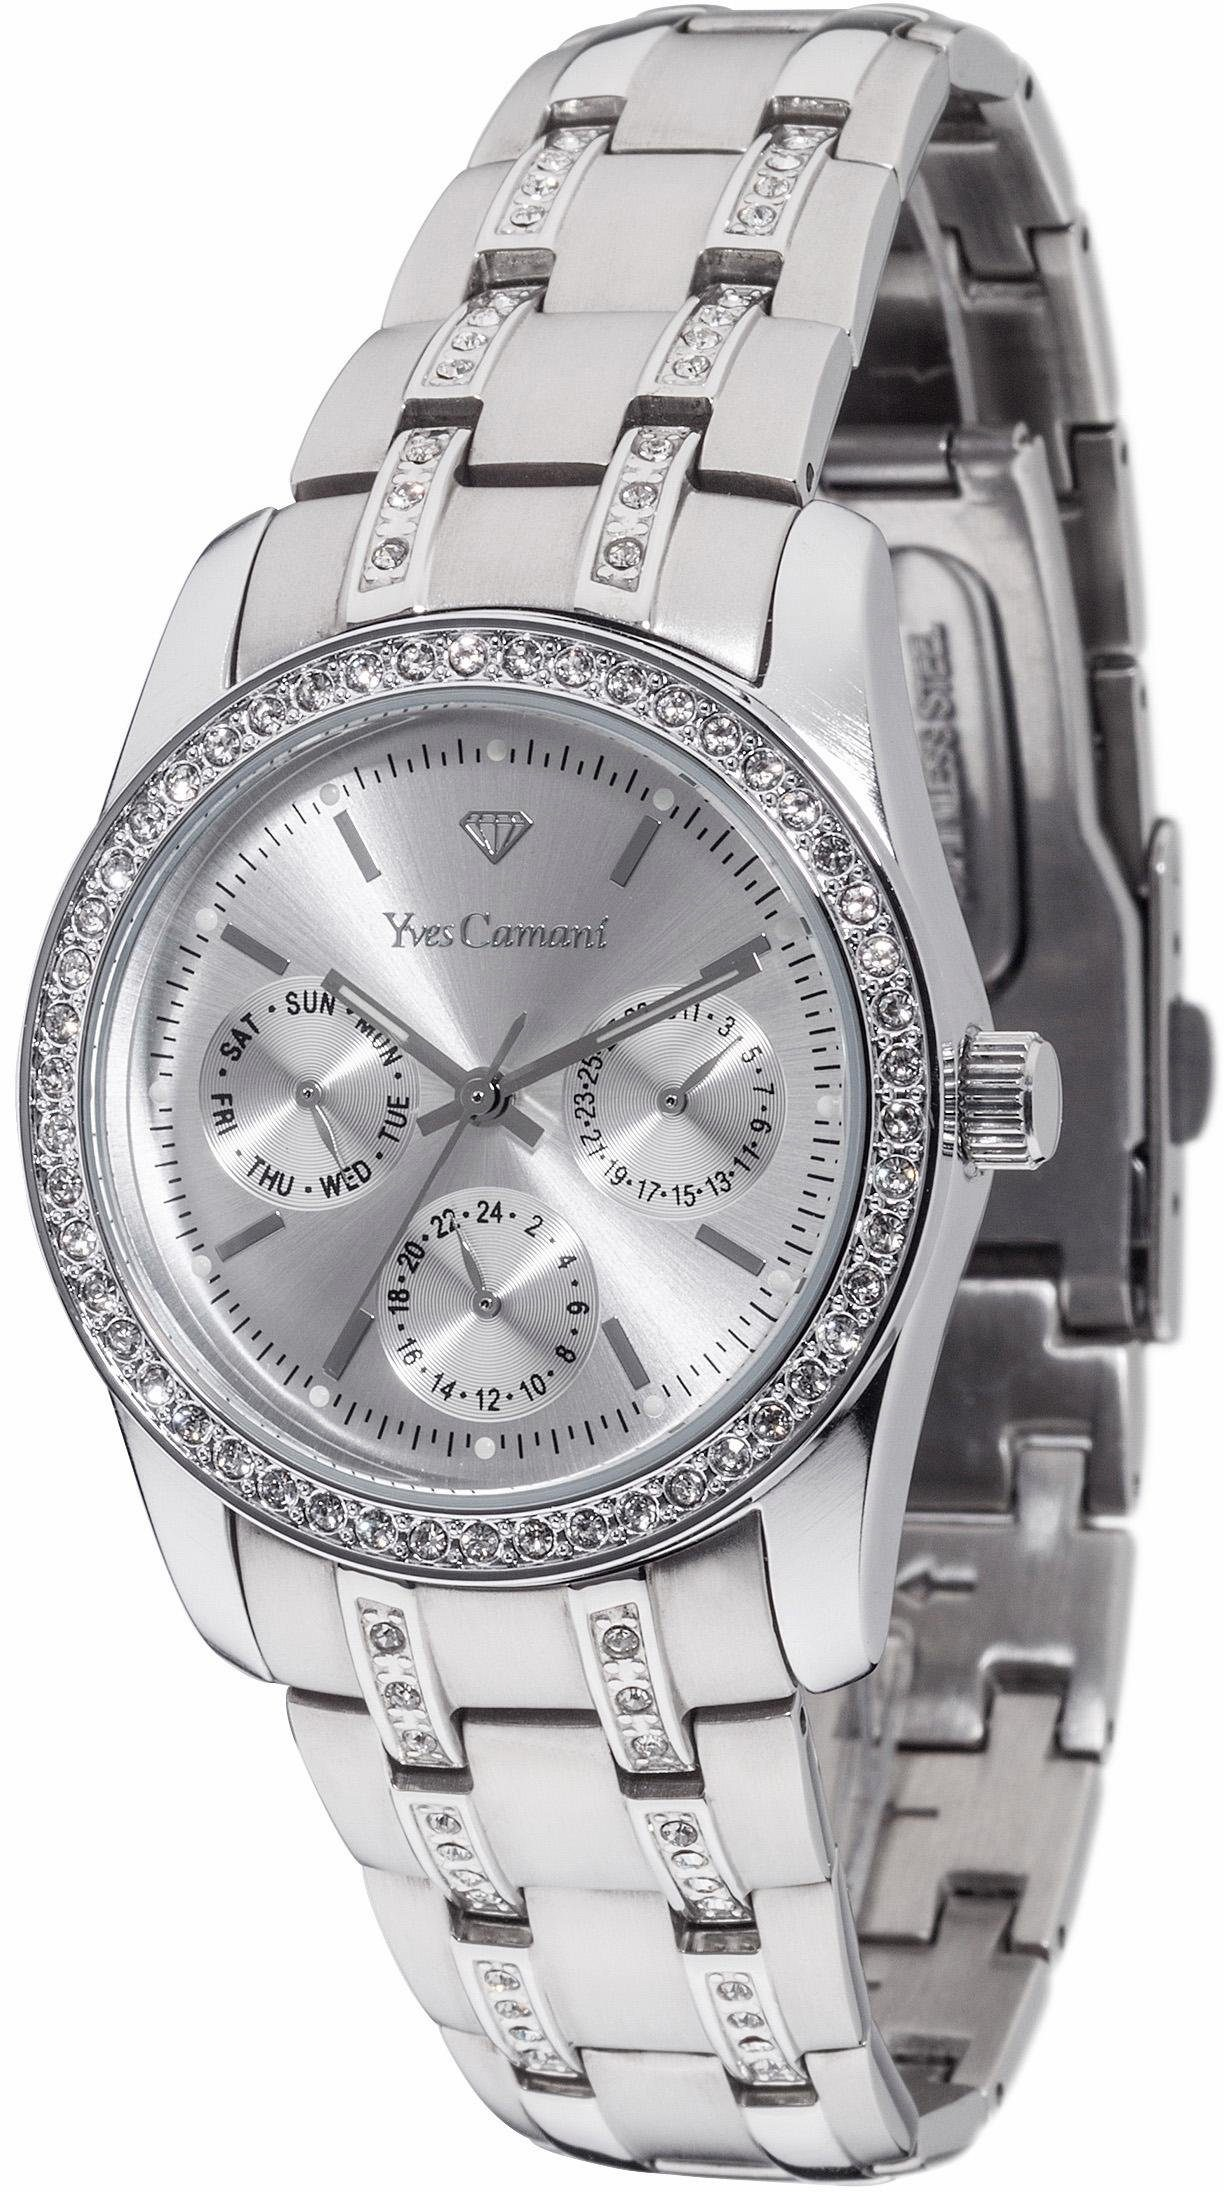 Yves Camani Multifunktionsuhr »MIELLE Multifunction Silver, YC1069-A«